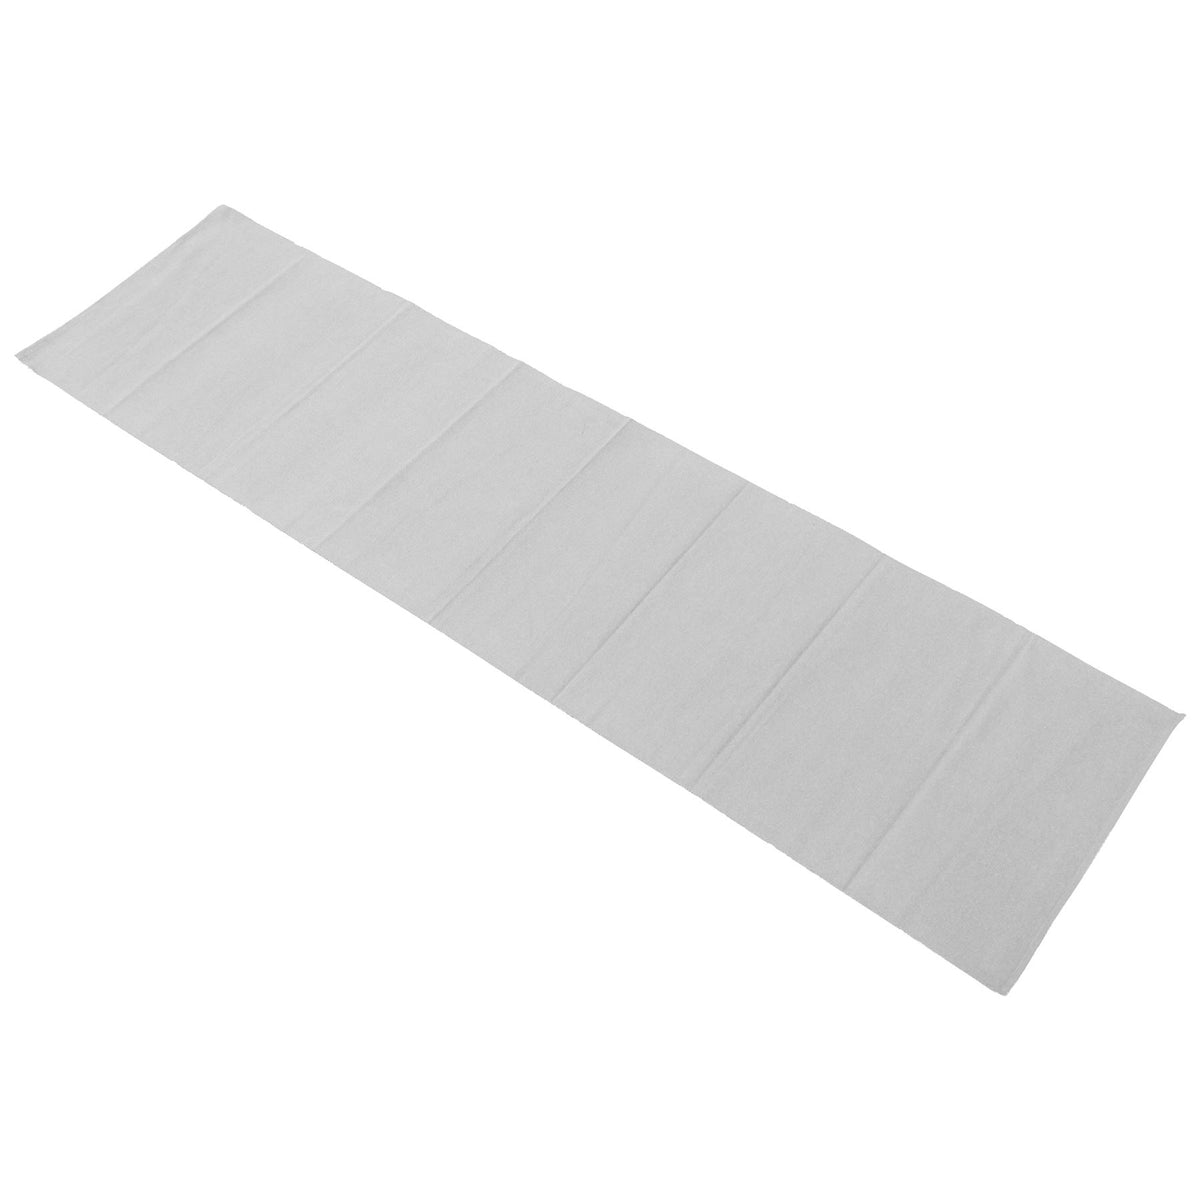 Nicola Spring Ribbed Cotton Dining Table Runner - 183cm - Grey